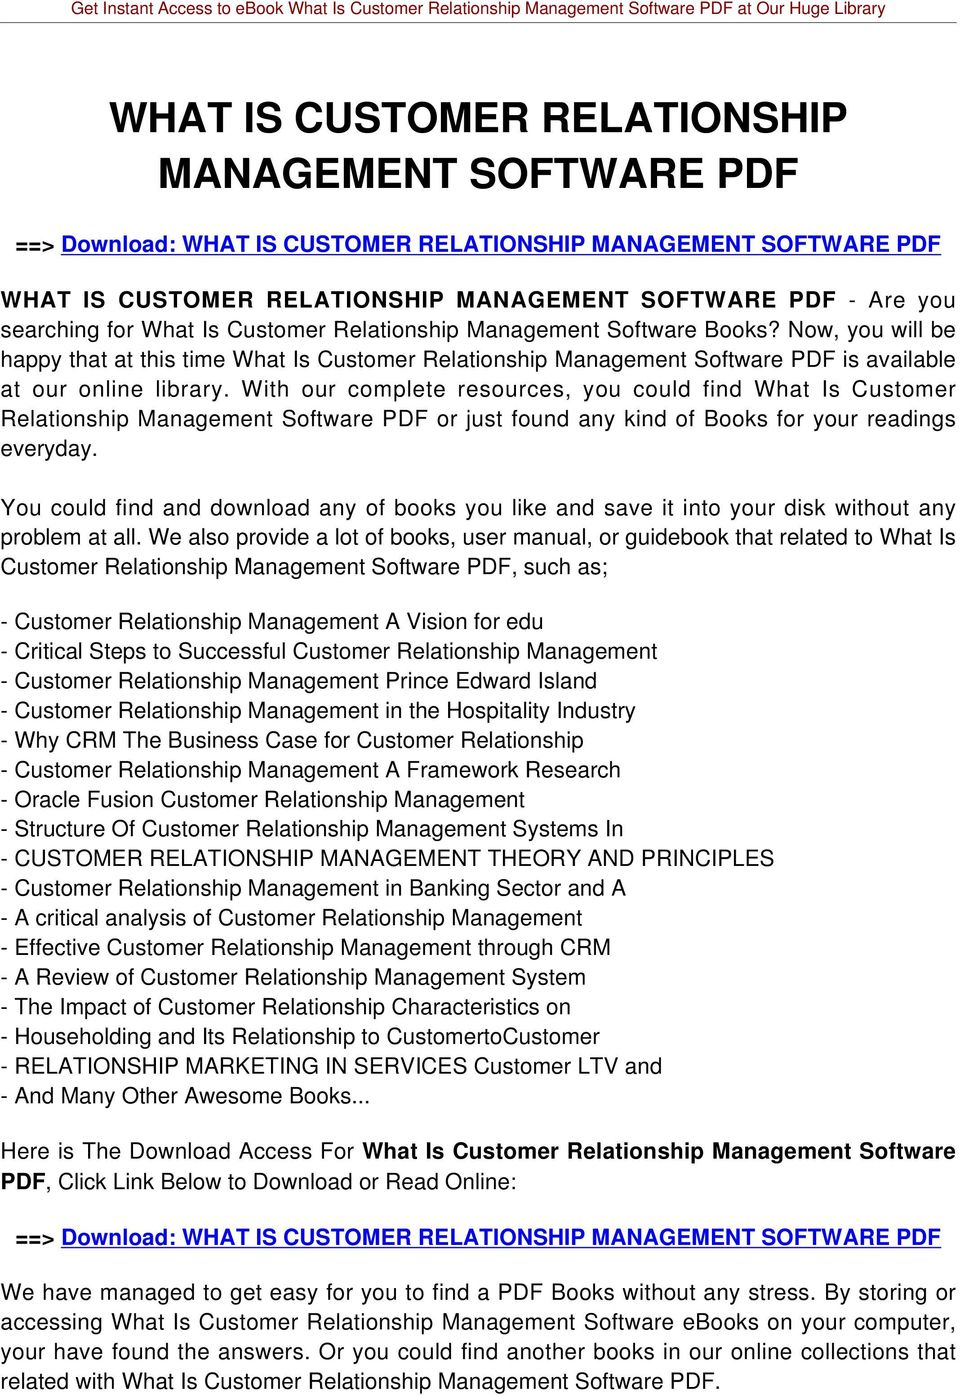 With our complete resources, you could find What Is Customer Relationship Management Software PDF or just found any kind of Books for your readings everyday.